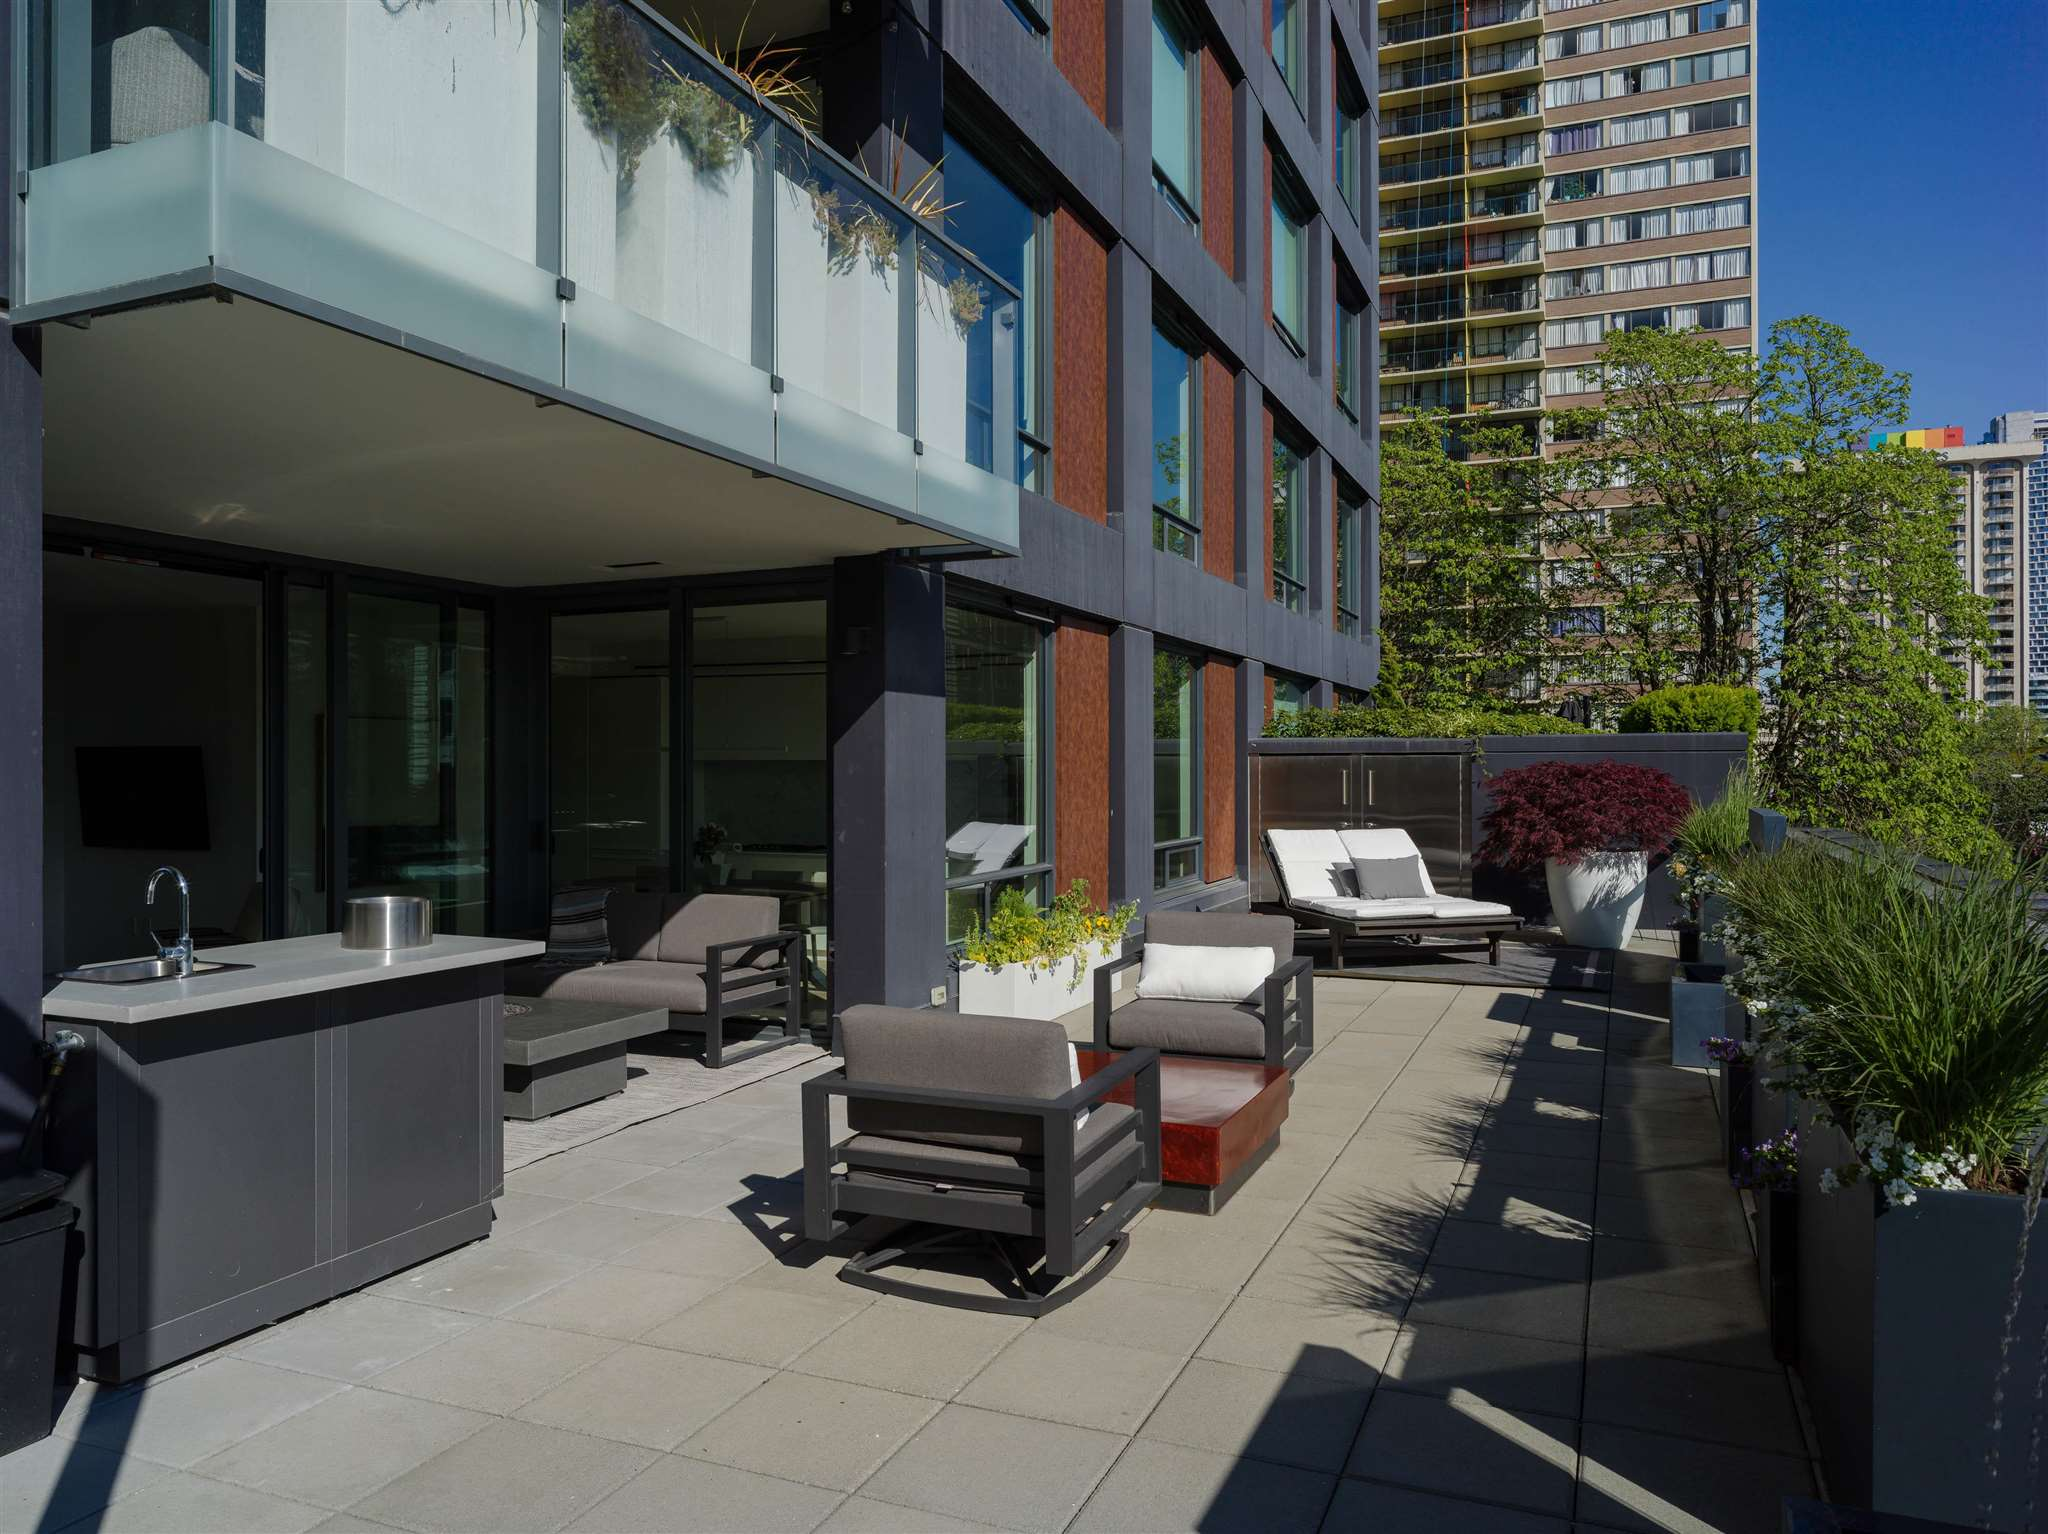 403 1171 JERVIS STREET - West End VW Apartment/Condo for sale, 2 Bedrooms (R2591528) - #17